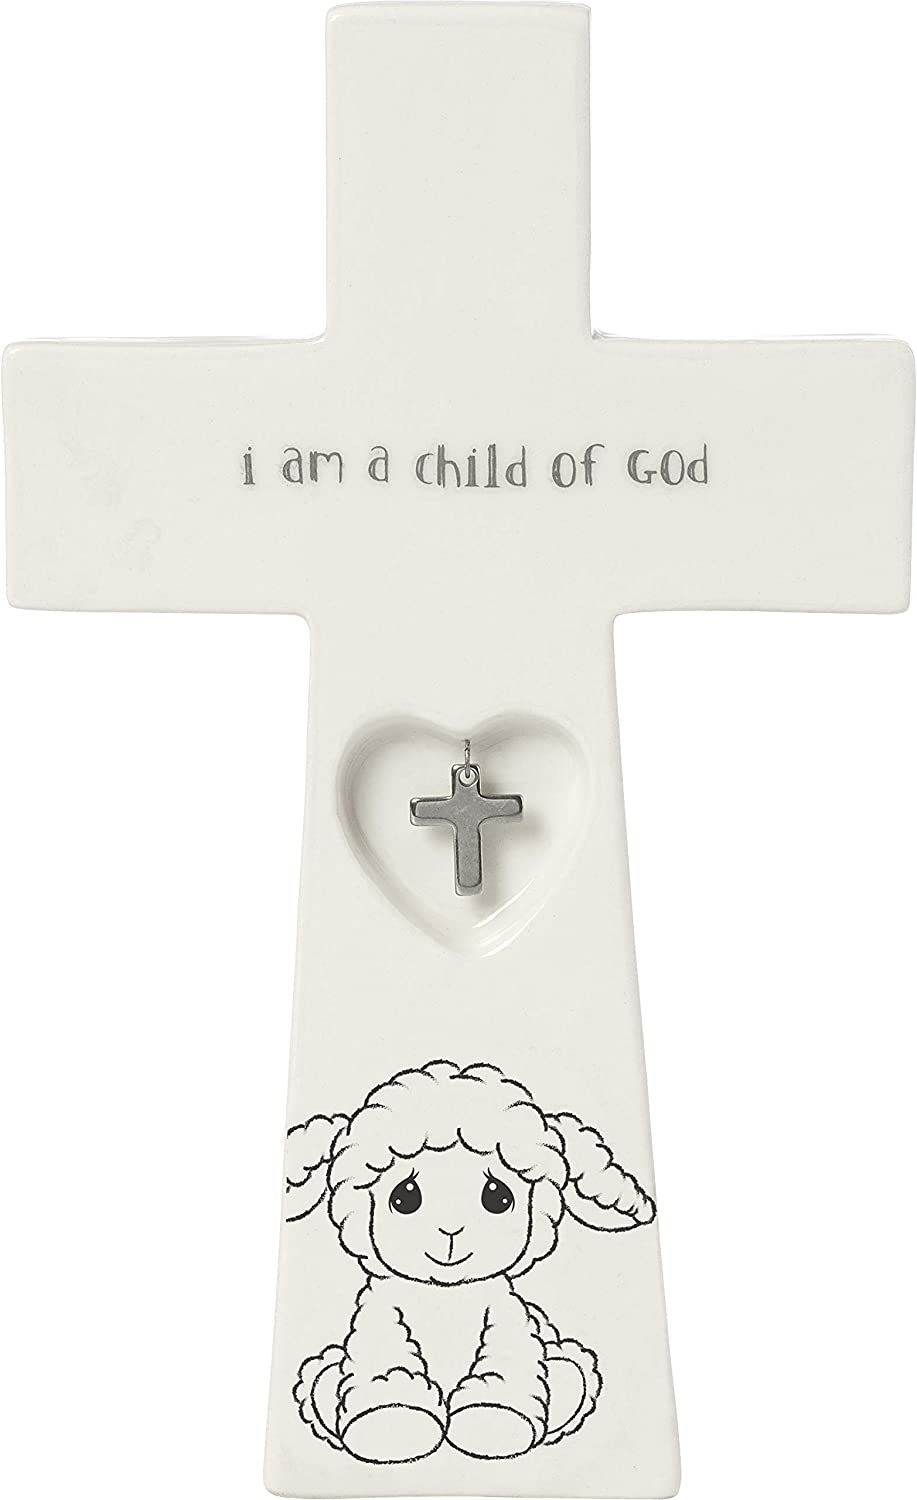 Precious Moments Child of God 7.25-Inch Baptism Charm 183433 Cross, One Size, Multi